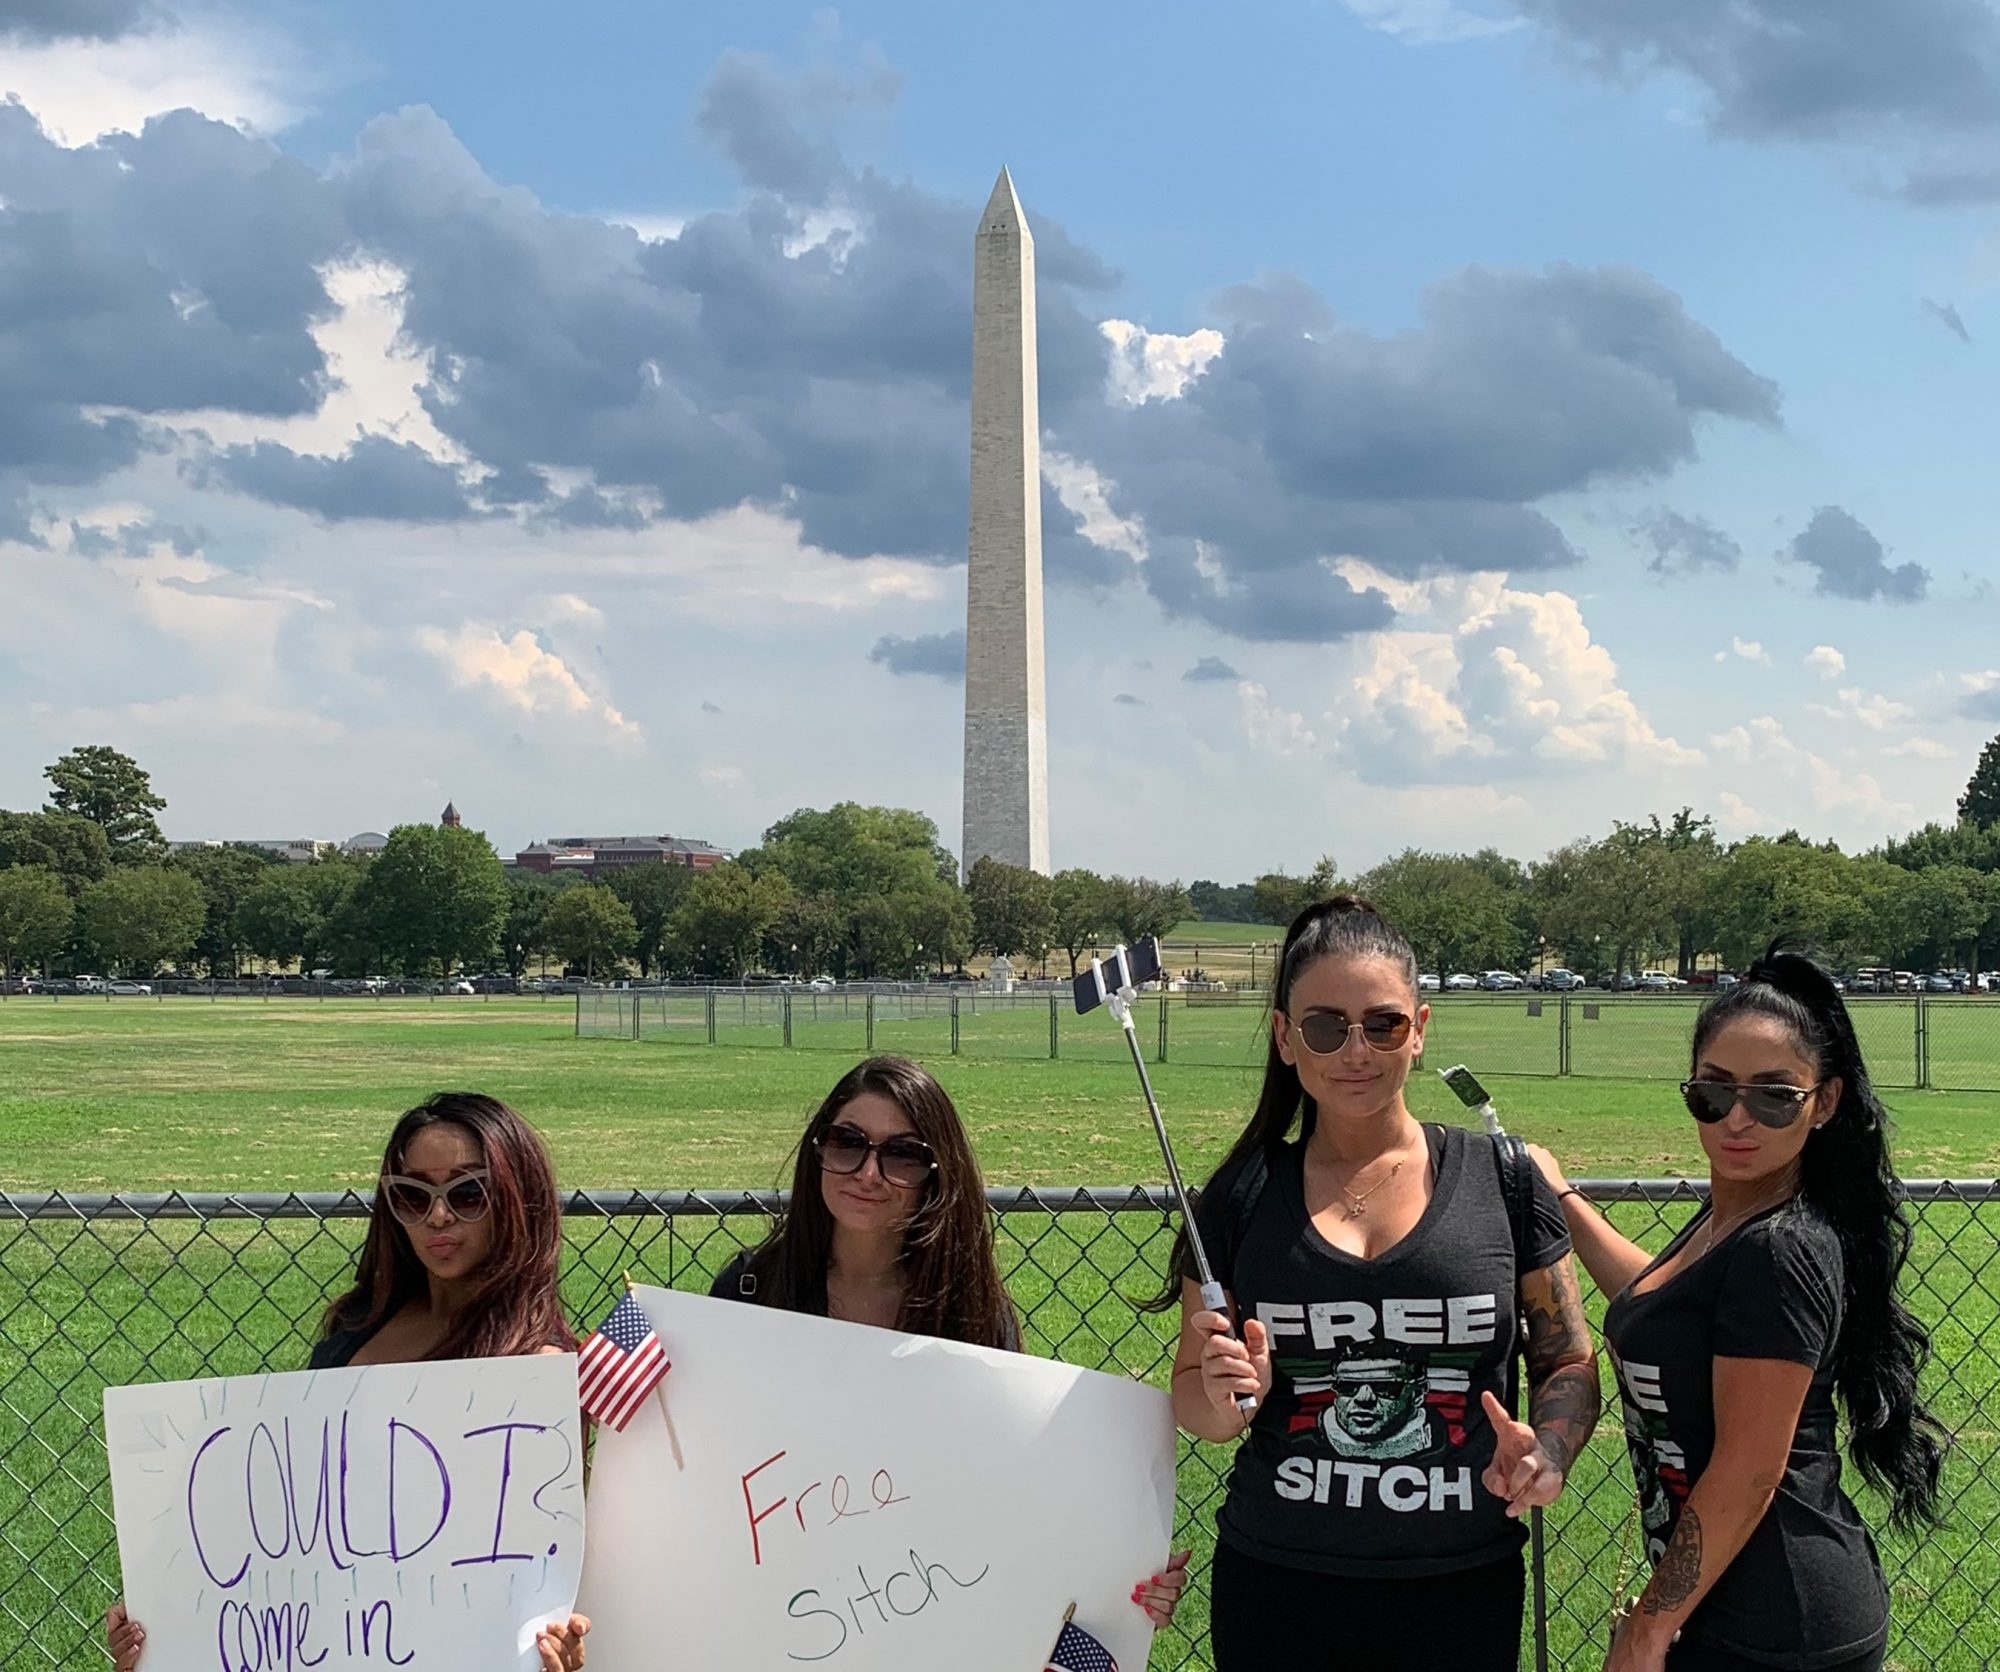 Jersey Shore's JWoww, Snooki, Deena and Angelina Hit D.C. in 'Free Sitch' Campaign